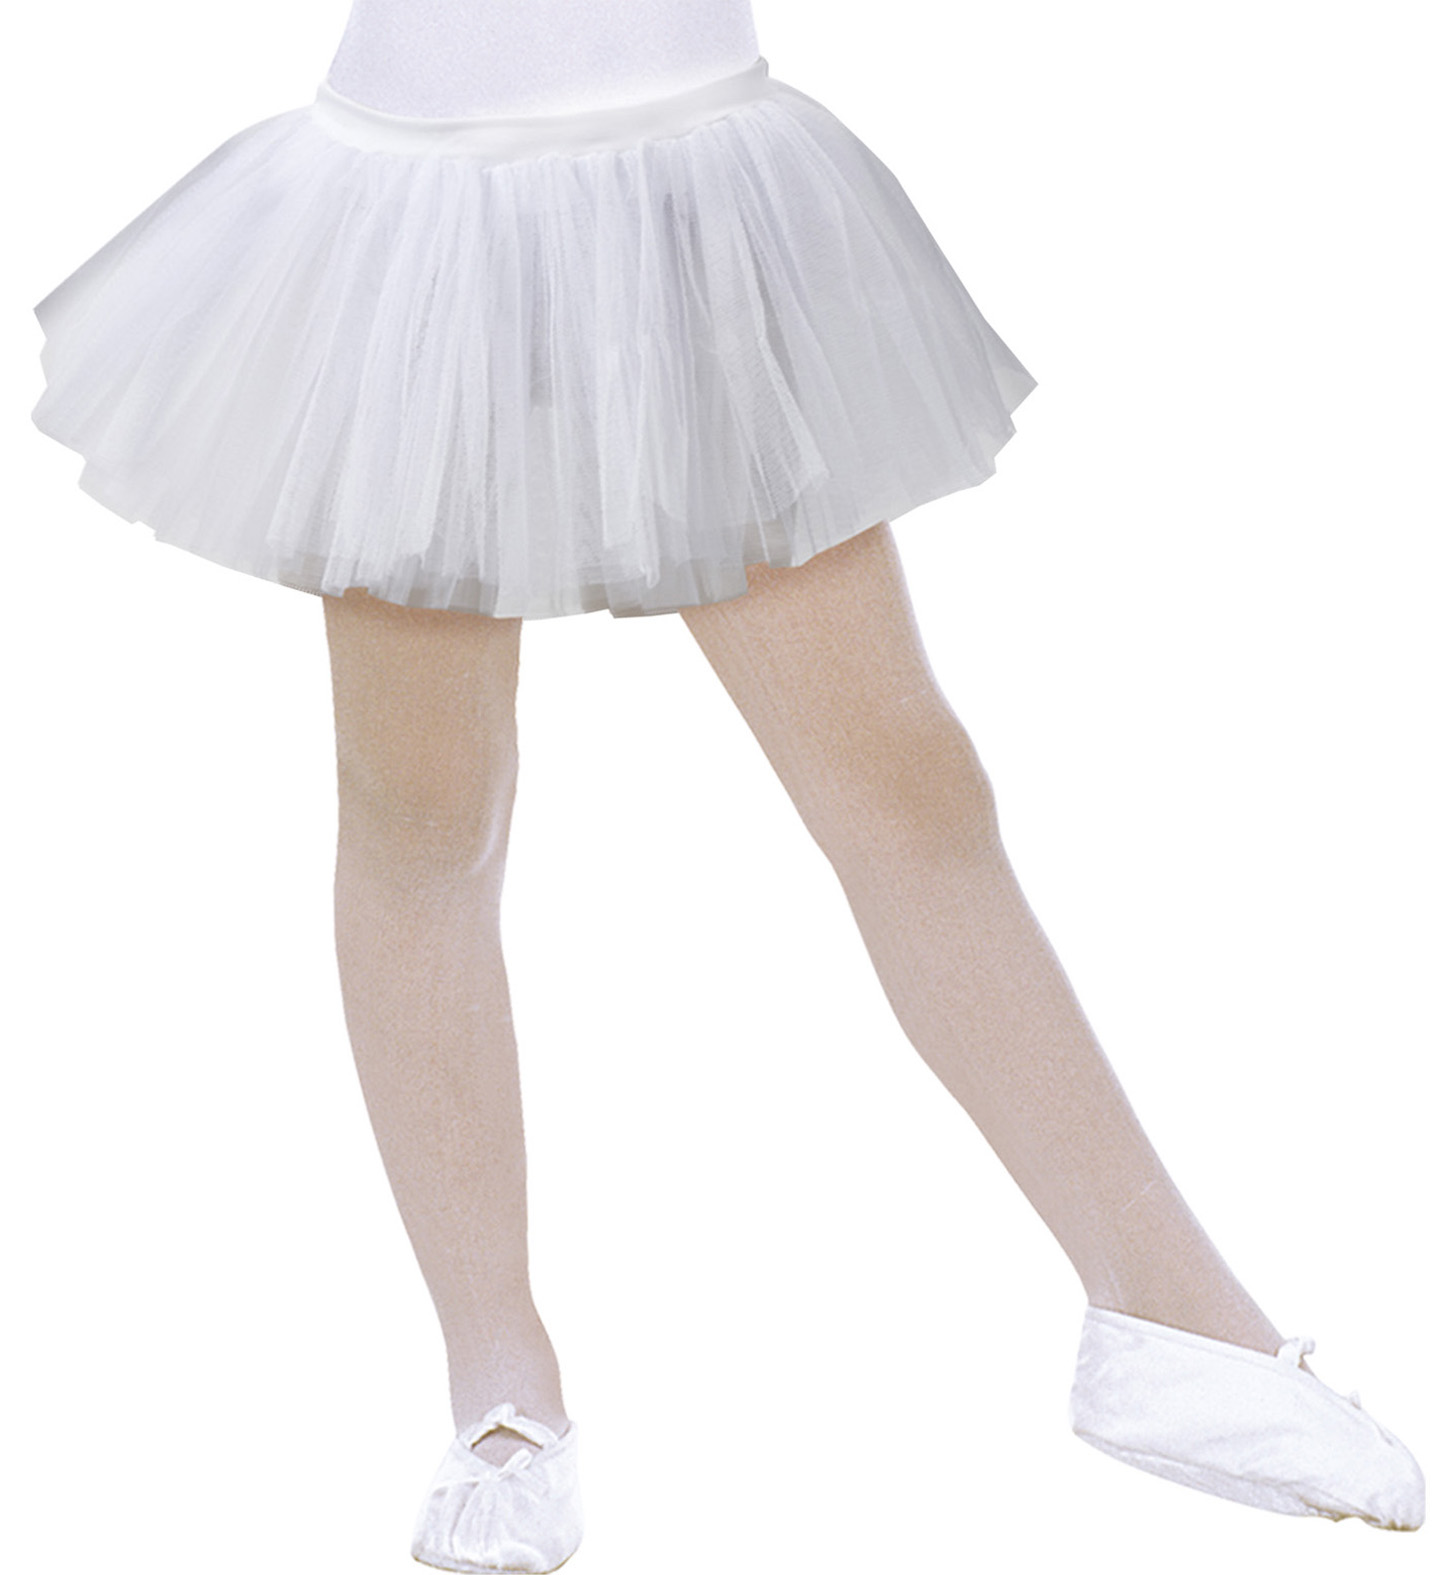 Ballerina Tutu - Child Size Tutu Rara Skirt Fancy Dress